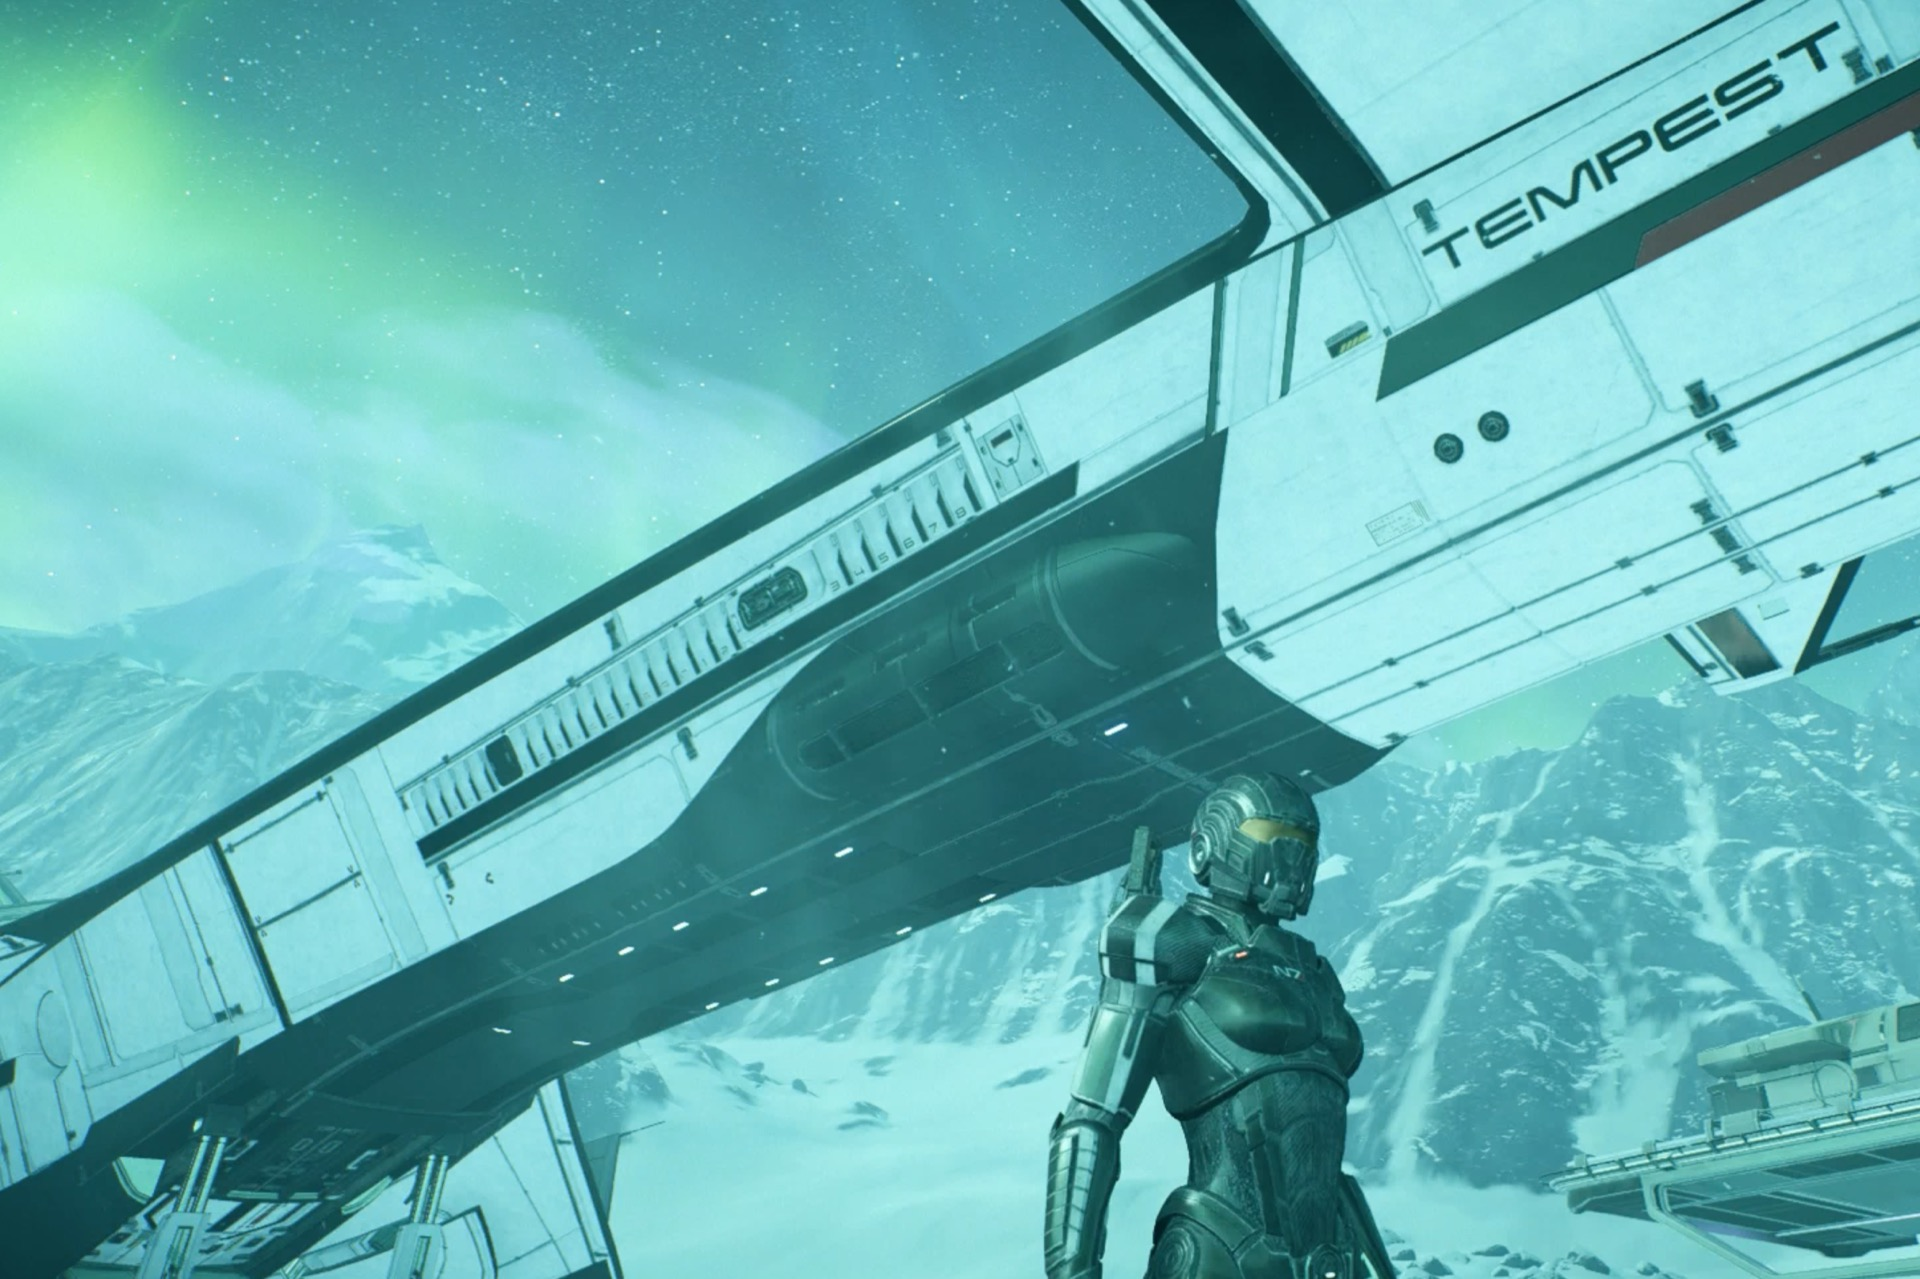 Mass Effect: Andromeda guide: How to get the N7 armor (and why you might not care)